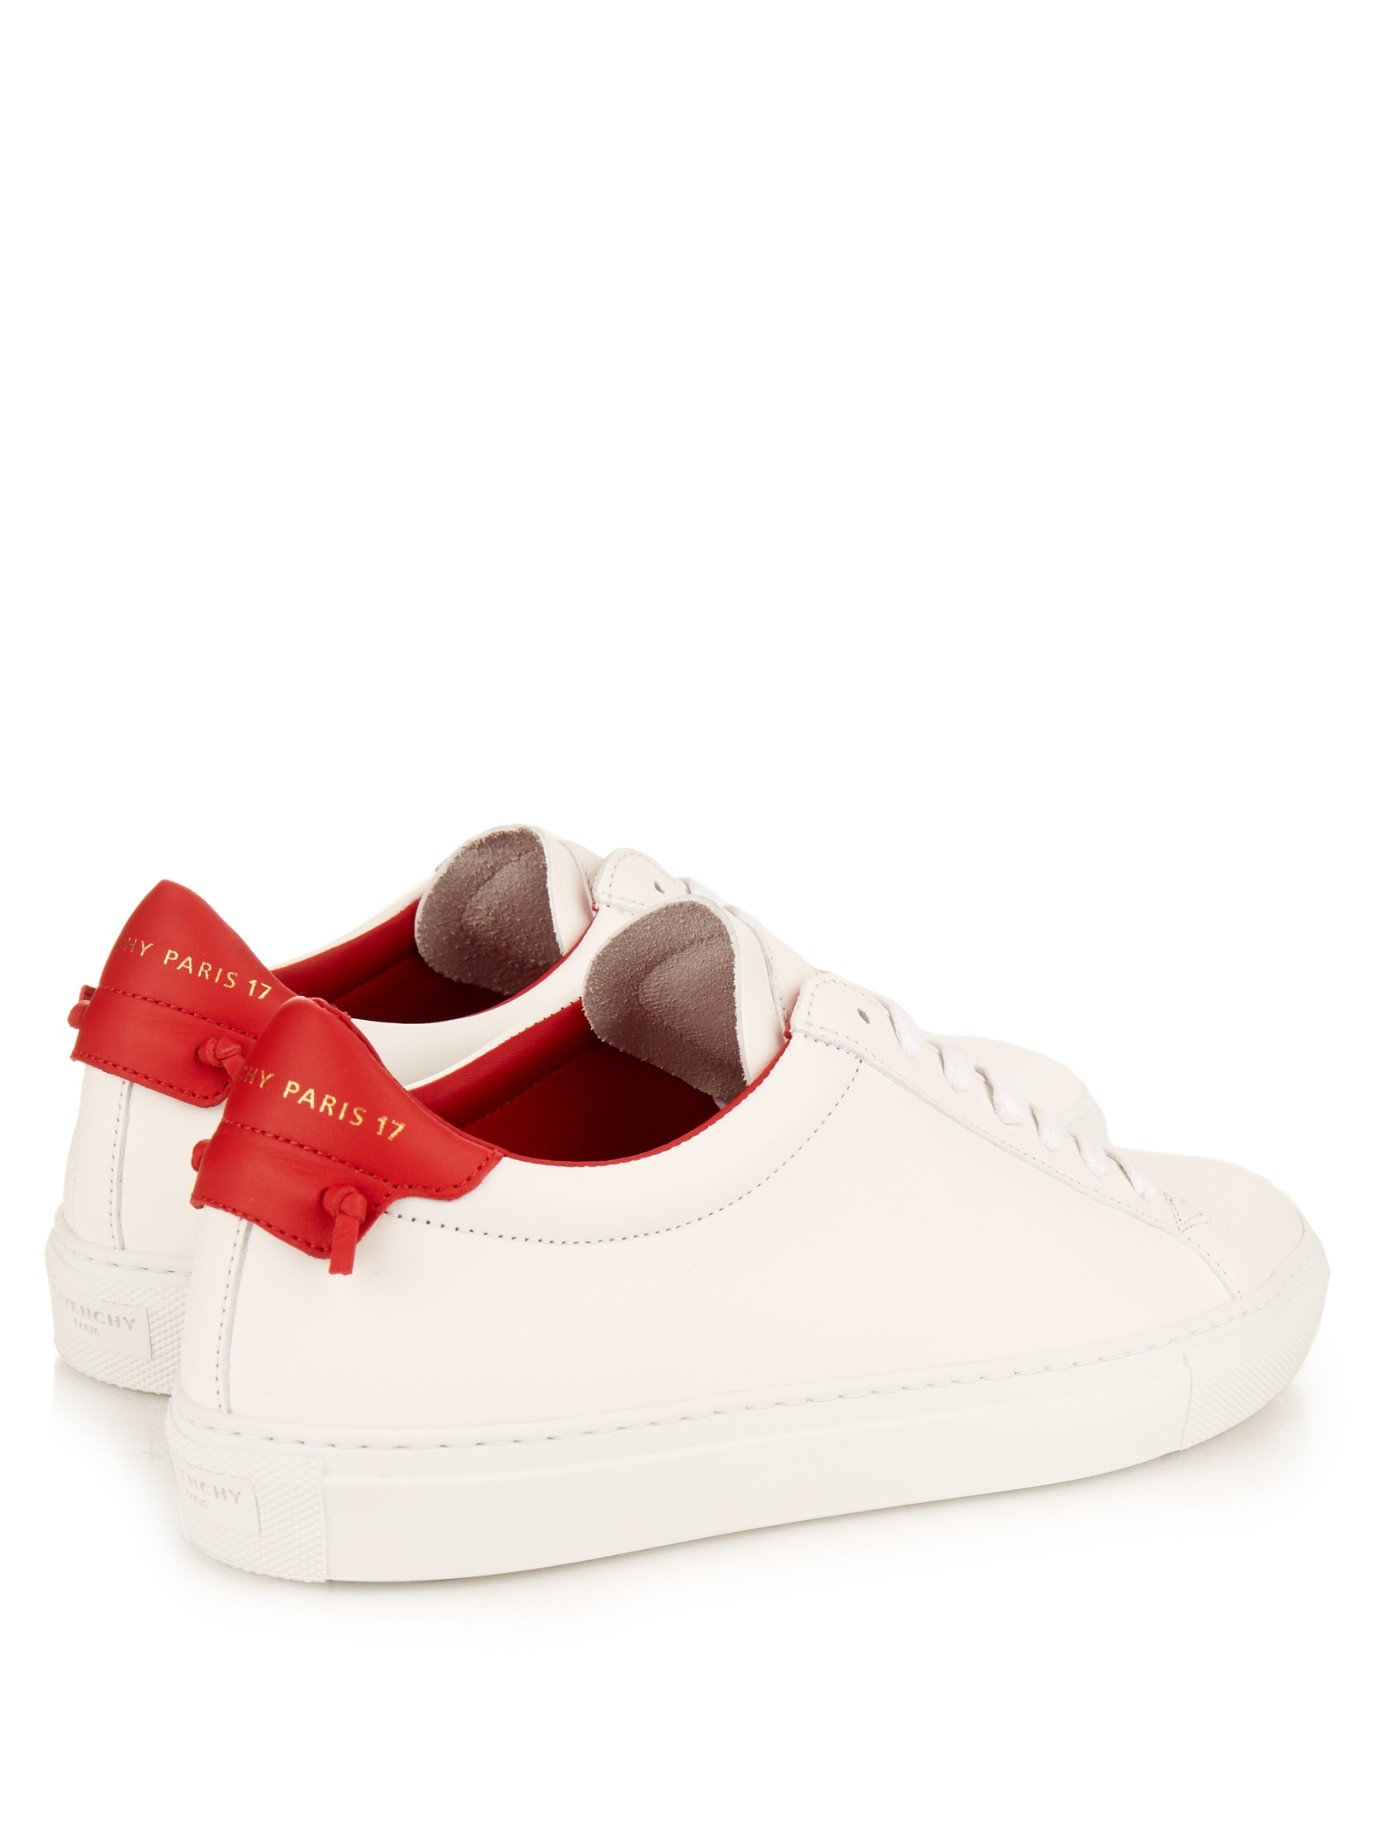 081a6eded71 Lyst - Givenchy Urban Street Low-top Leather Trainers in Red